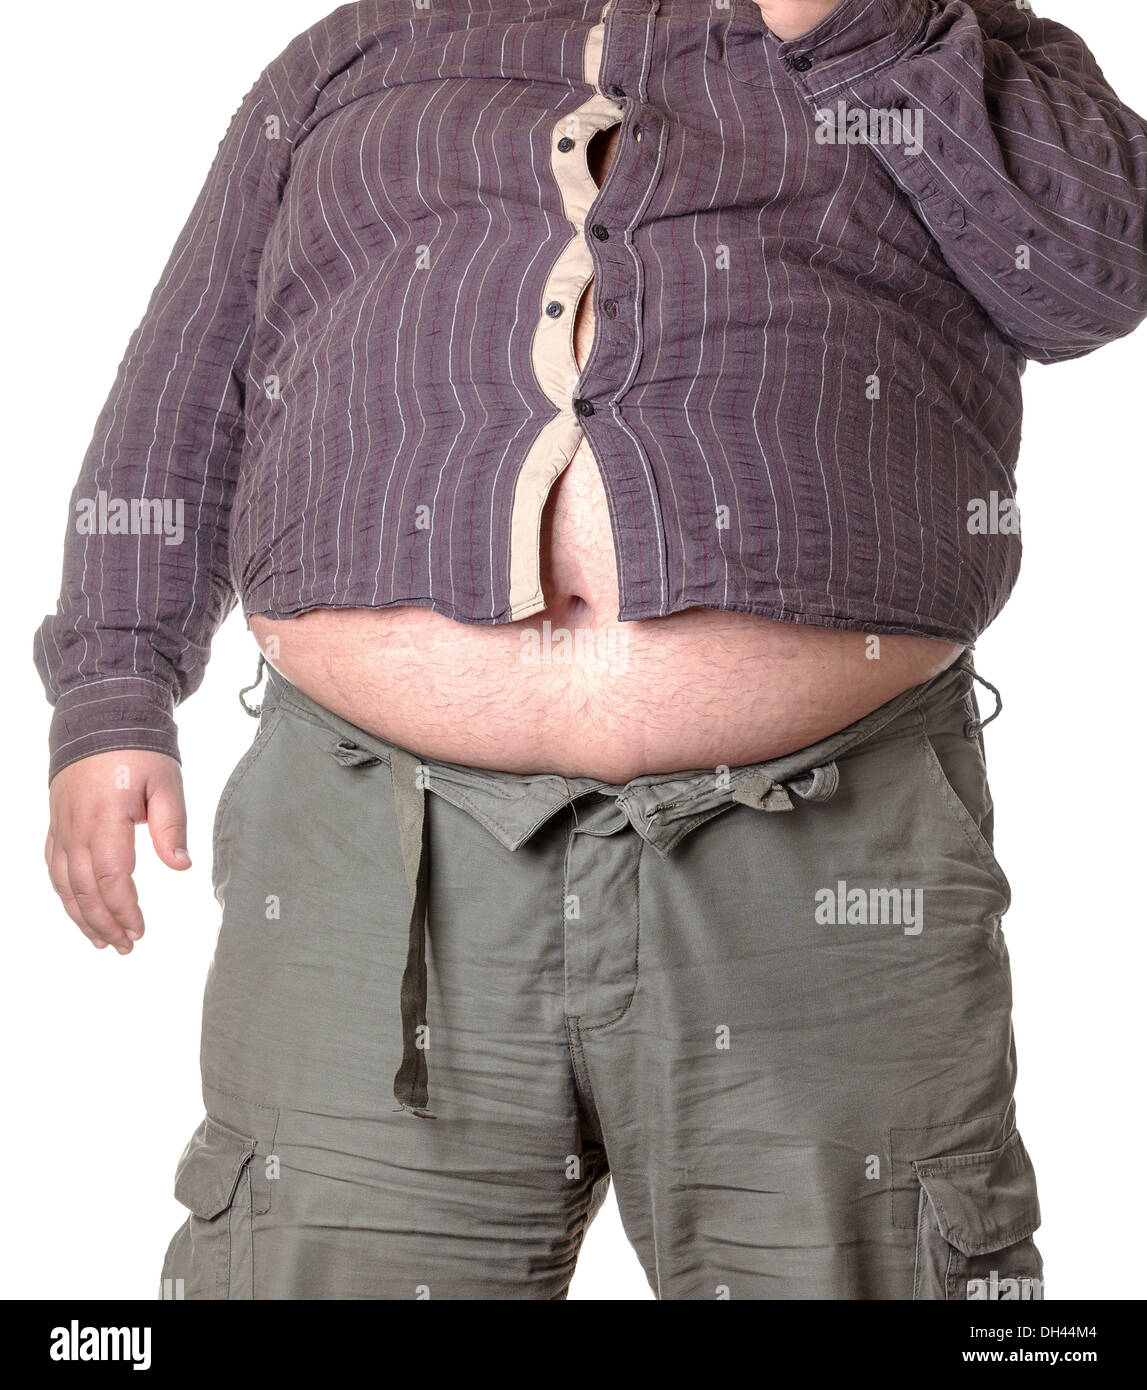 Belly Fat Man Stock Photos & Belly Fat Man Stock Images